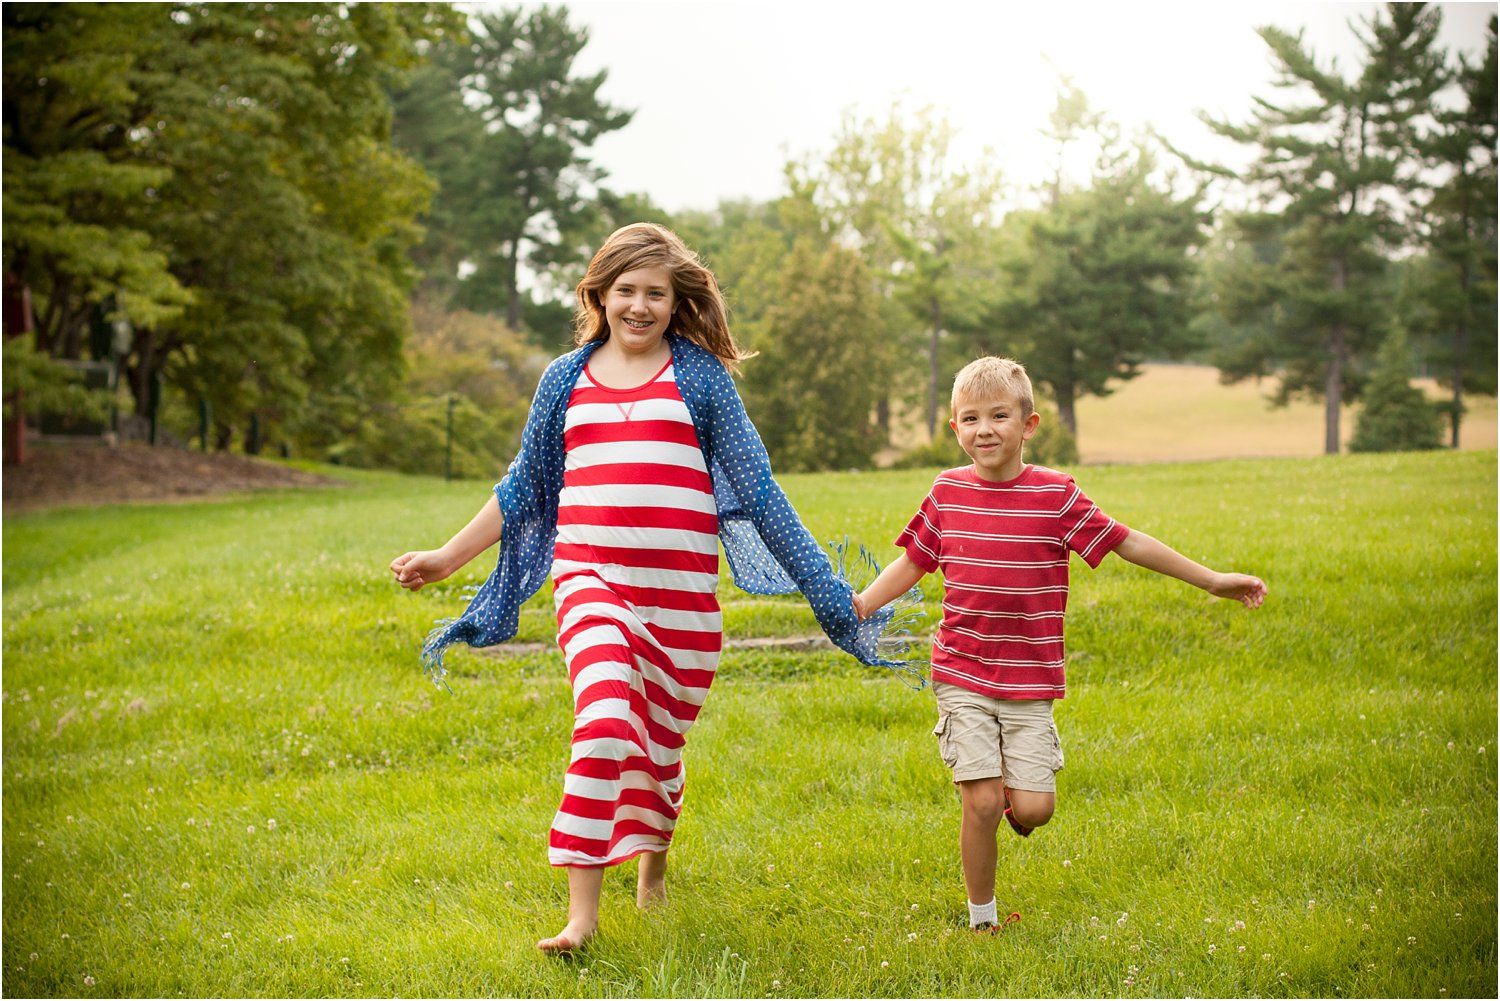 Blandy_Arboretum_Sibling_Mini_Sessions_Dodrill_0006.jpg